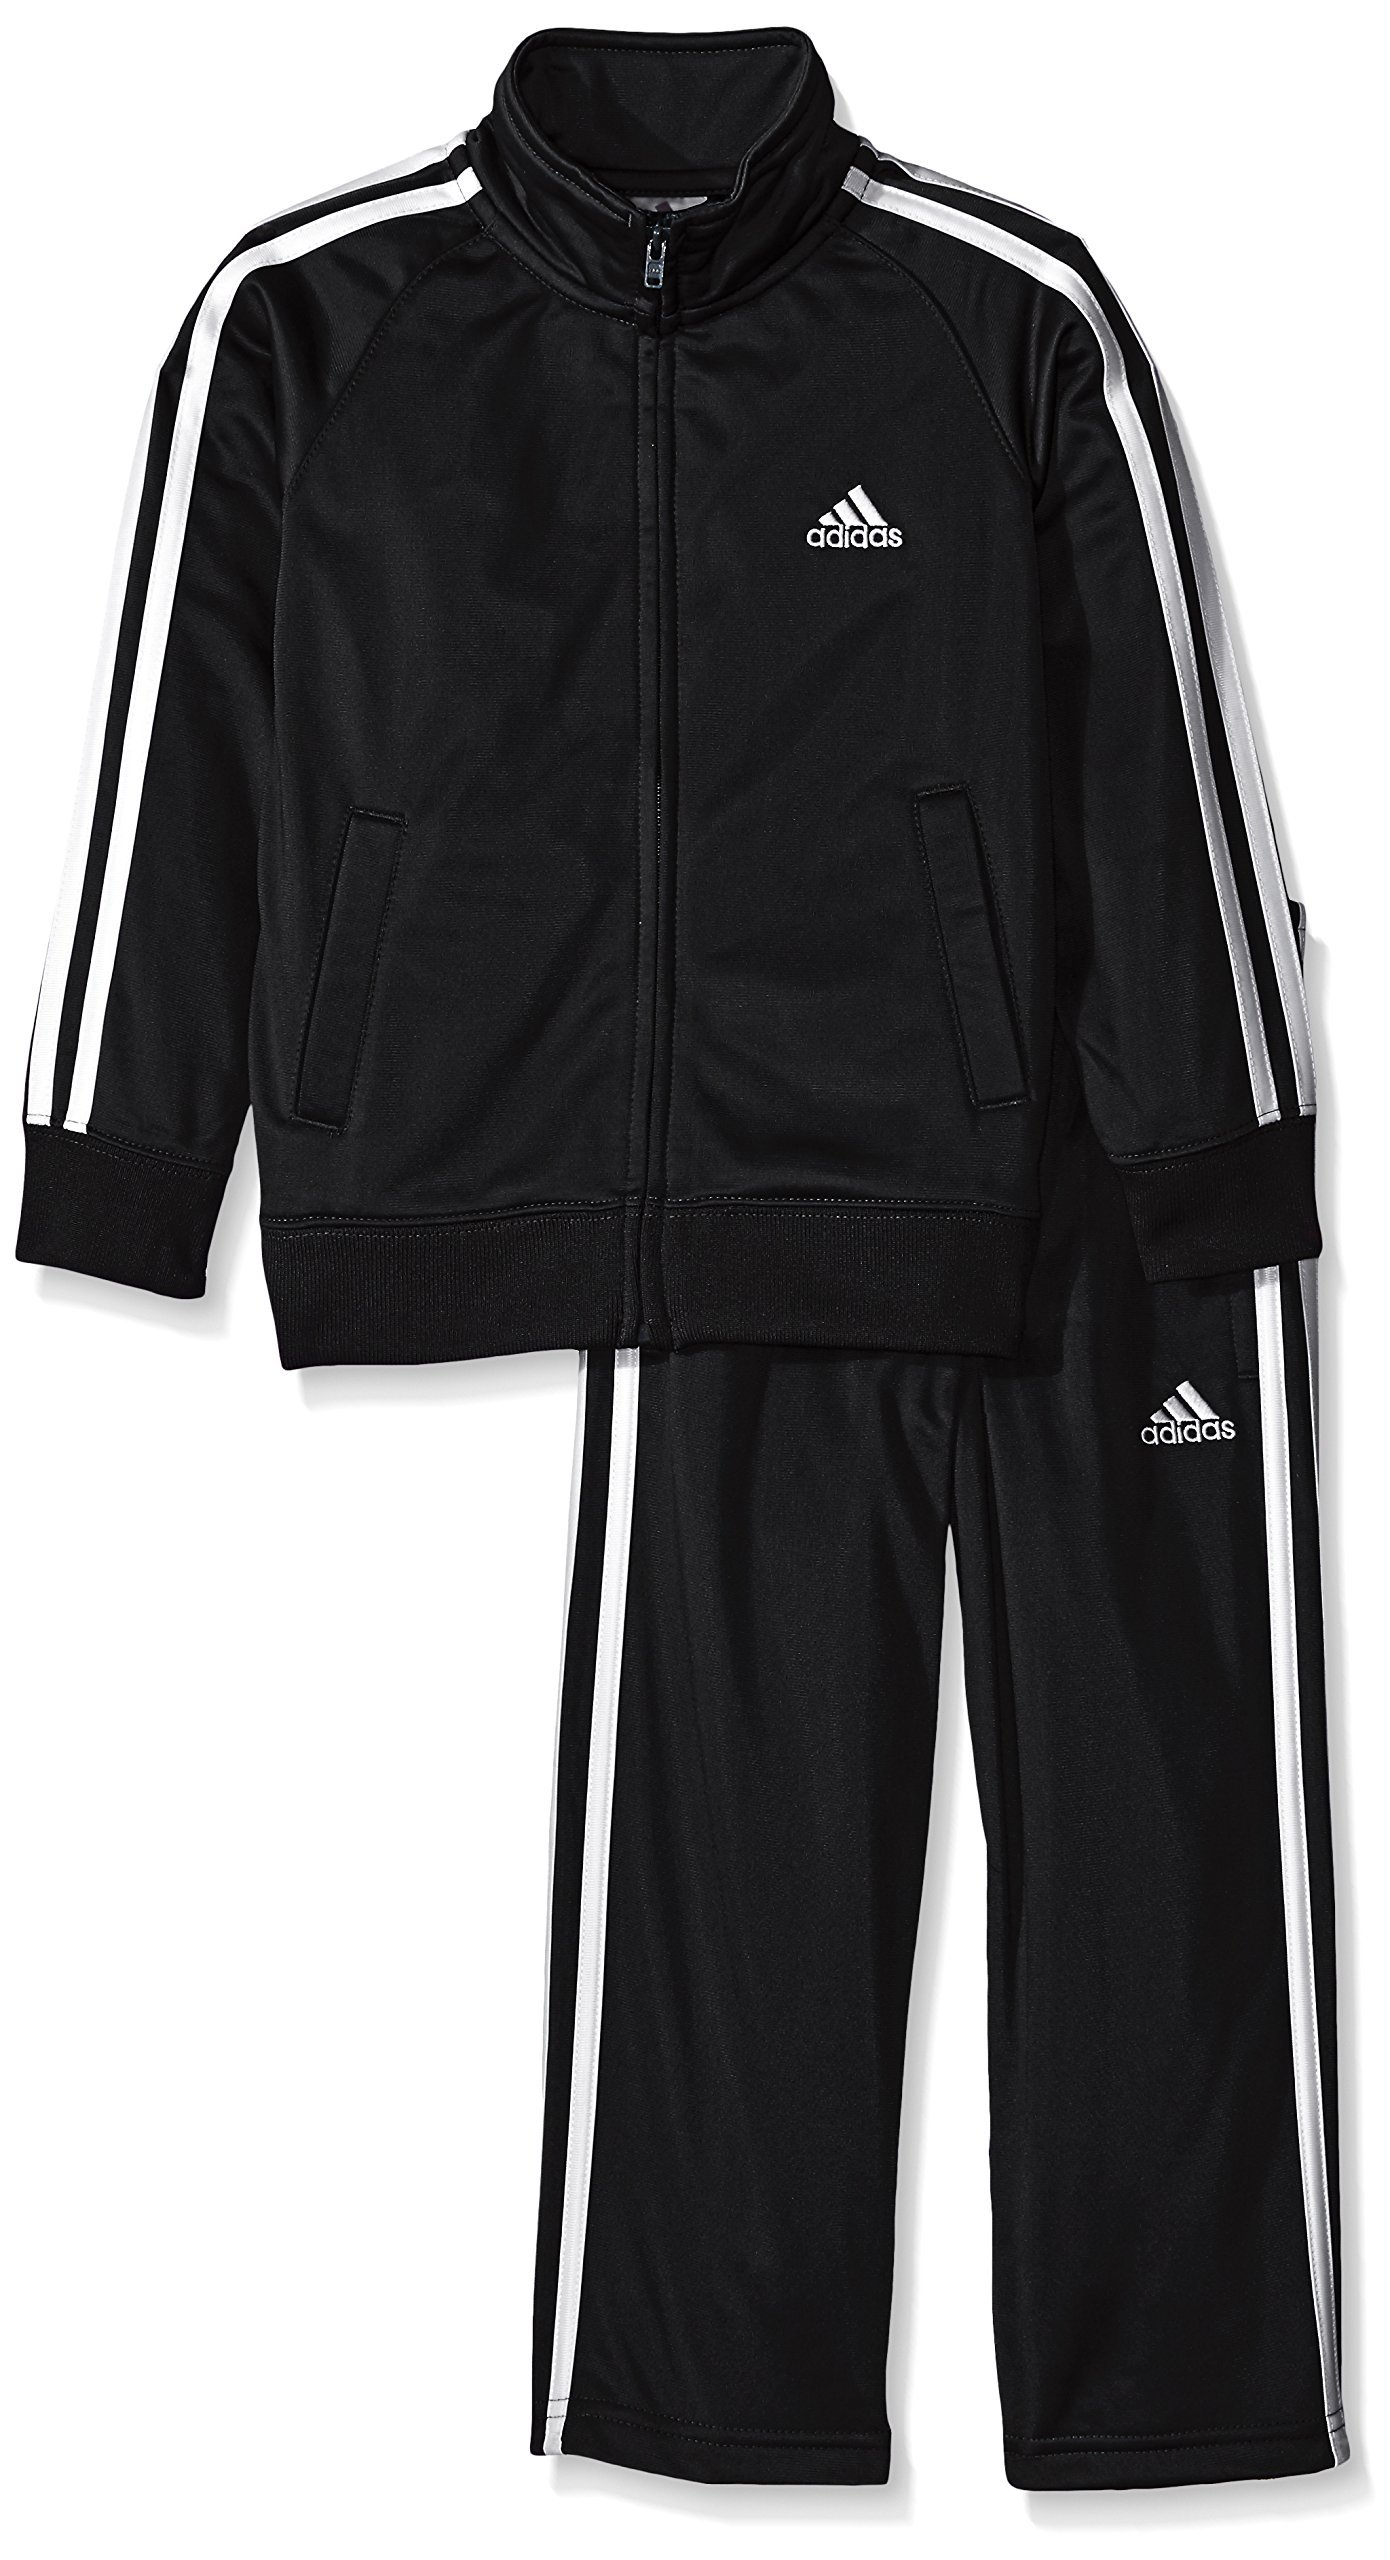 adidas Little Boys' Iconic Tricot Jacket and Pant Set, Black/White, 5 by adidas